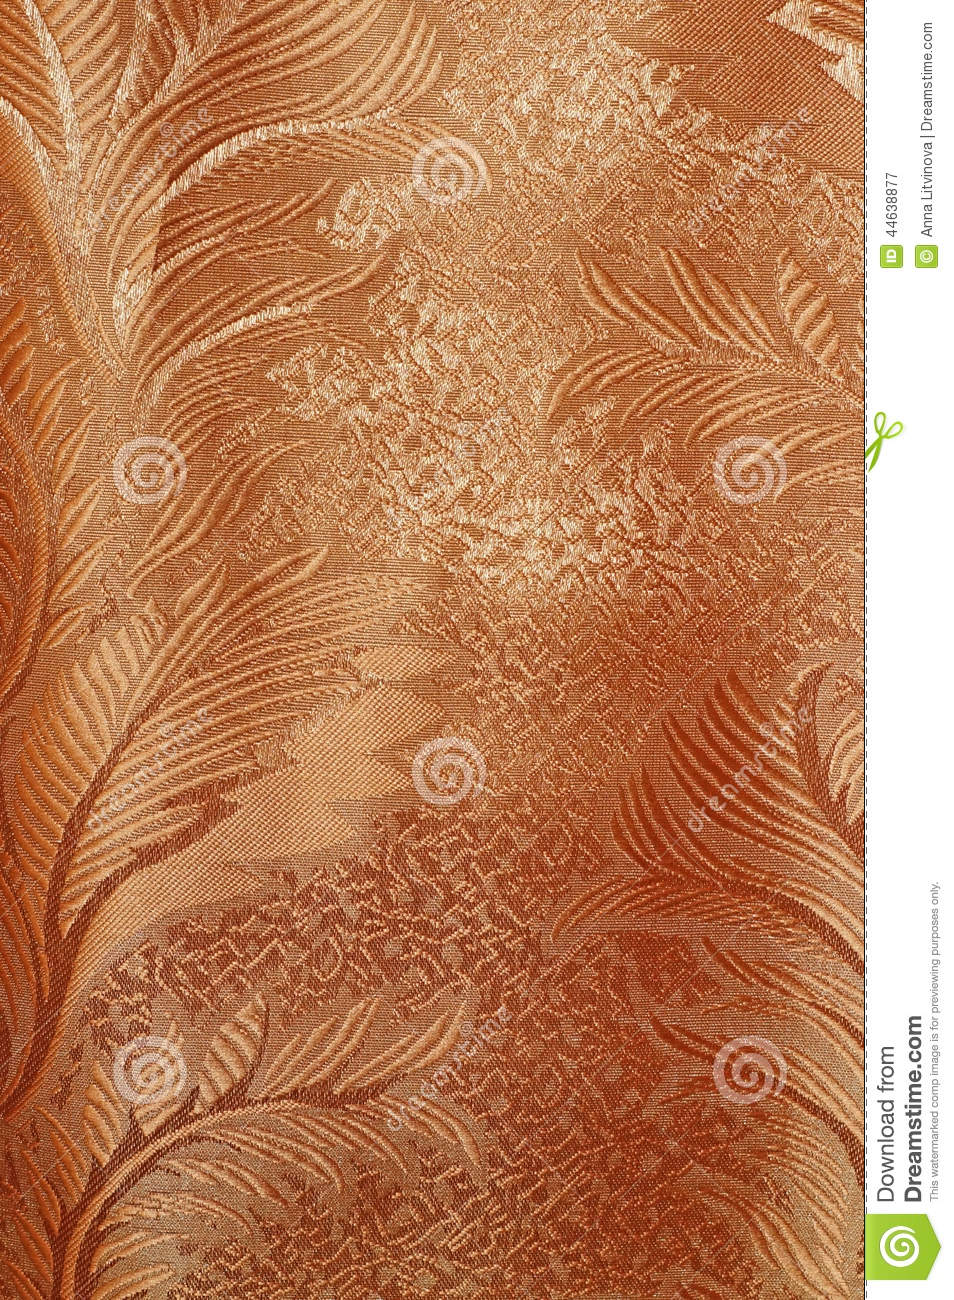 Red patterned curtains - Texture Of Red And Beige Satin Patterned Curtains With Folds Stock Photo